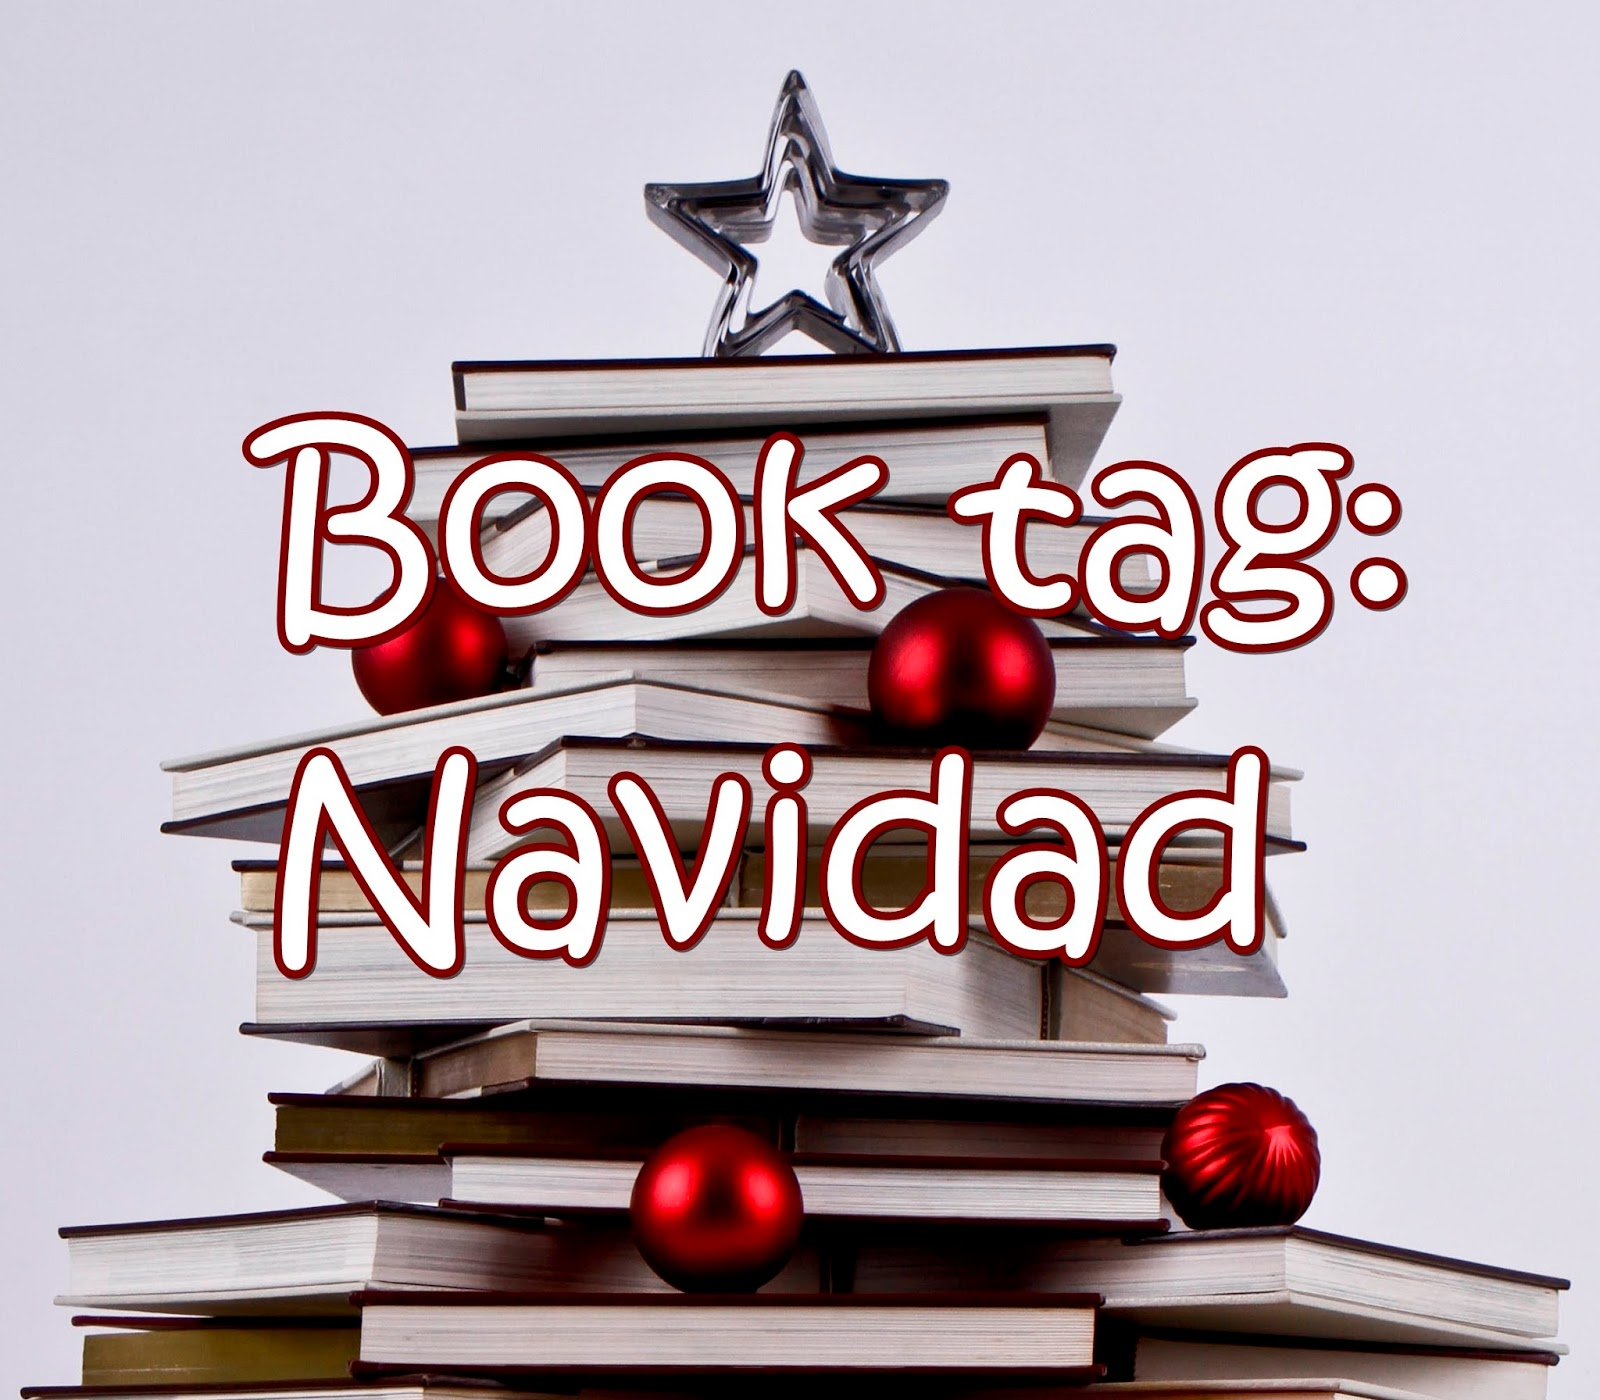 Book Tag navideño